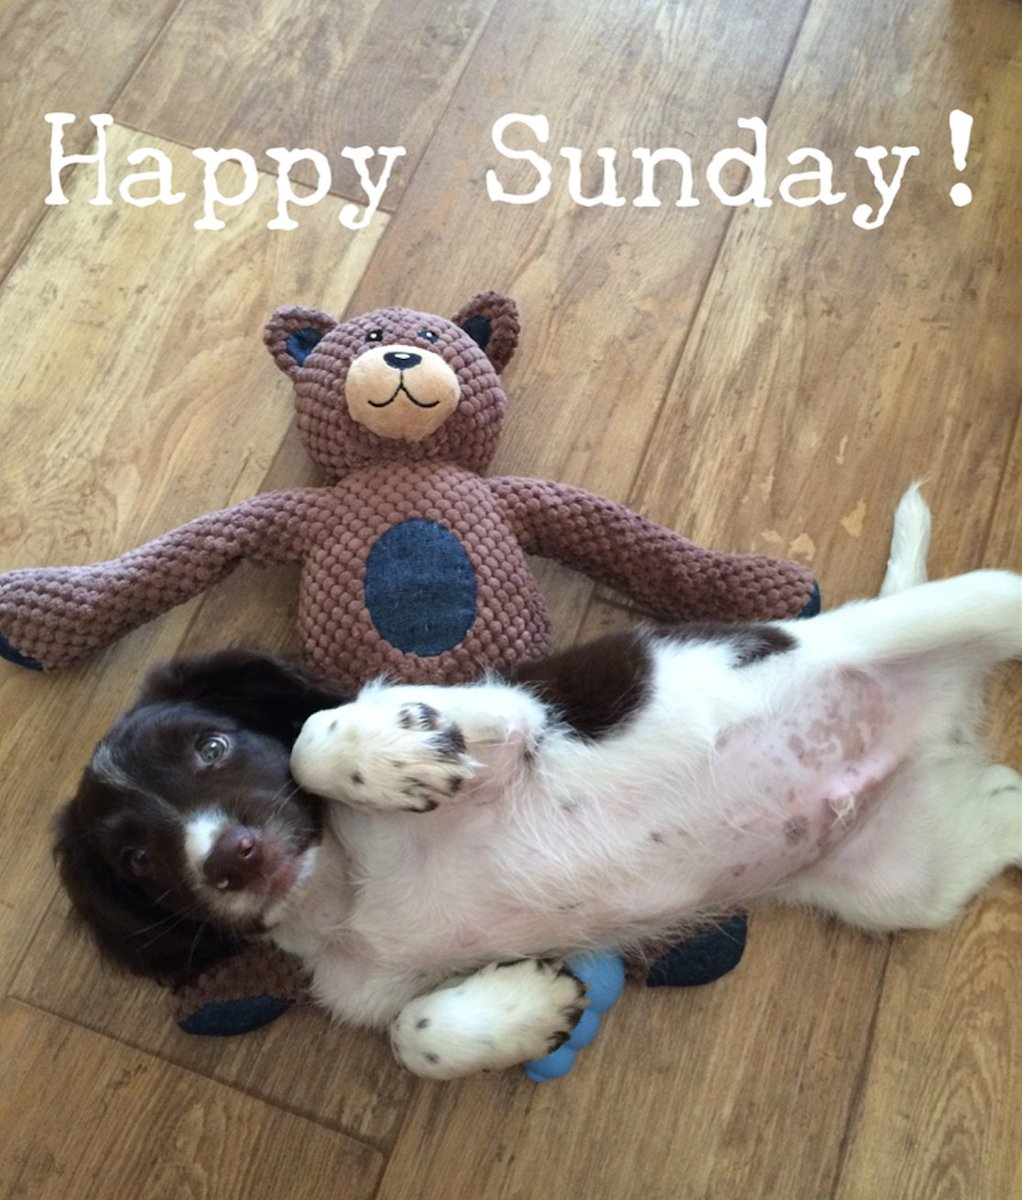 #Ralph wishes you all a #HappySunday!  #SpringerSpaniel ☺️ https://t.c...